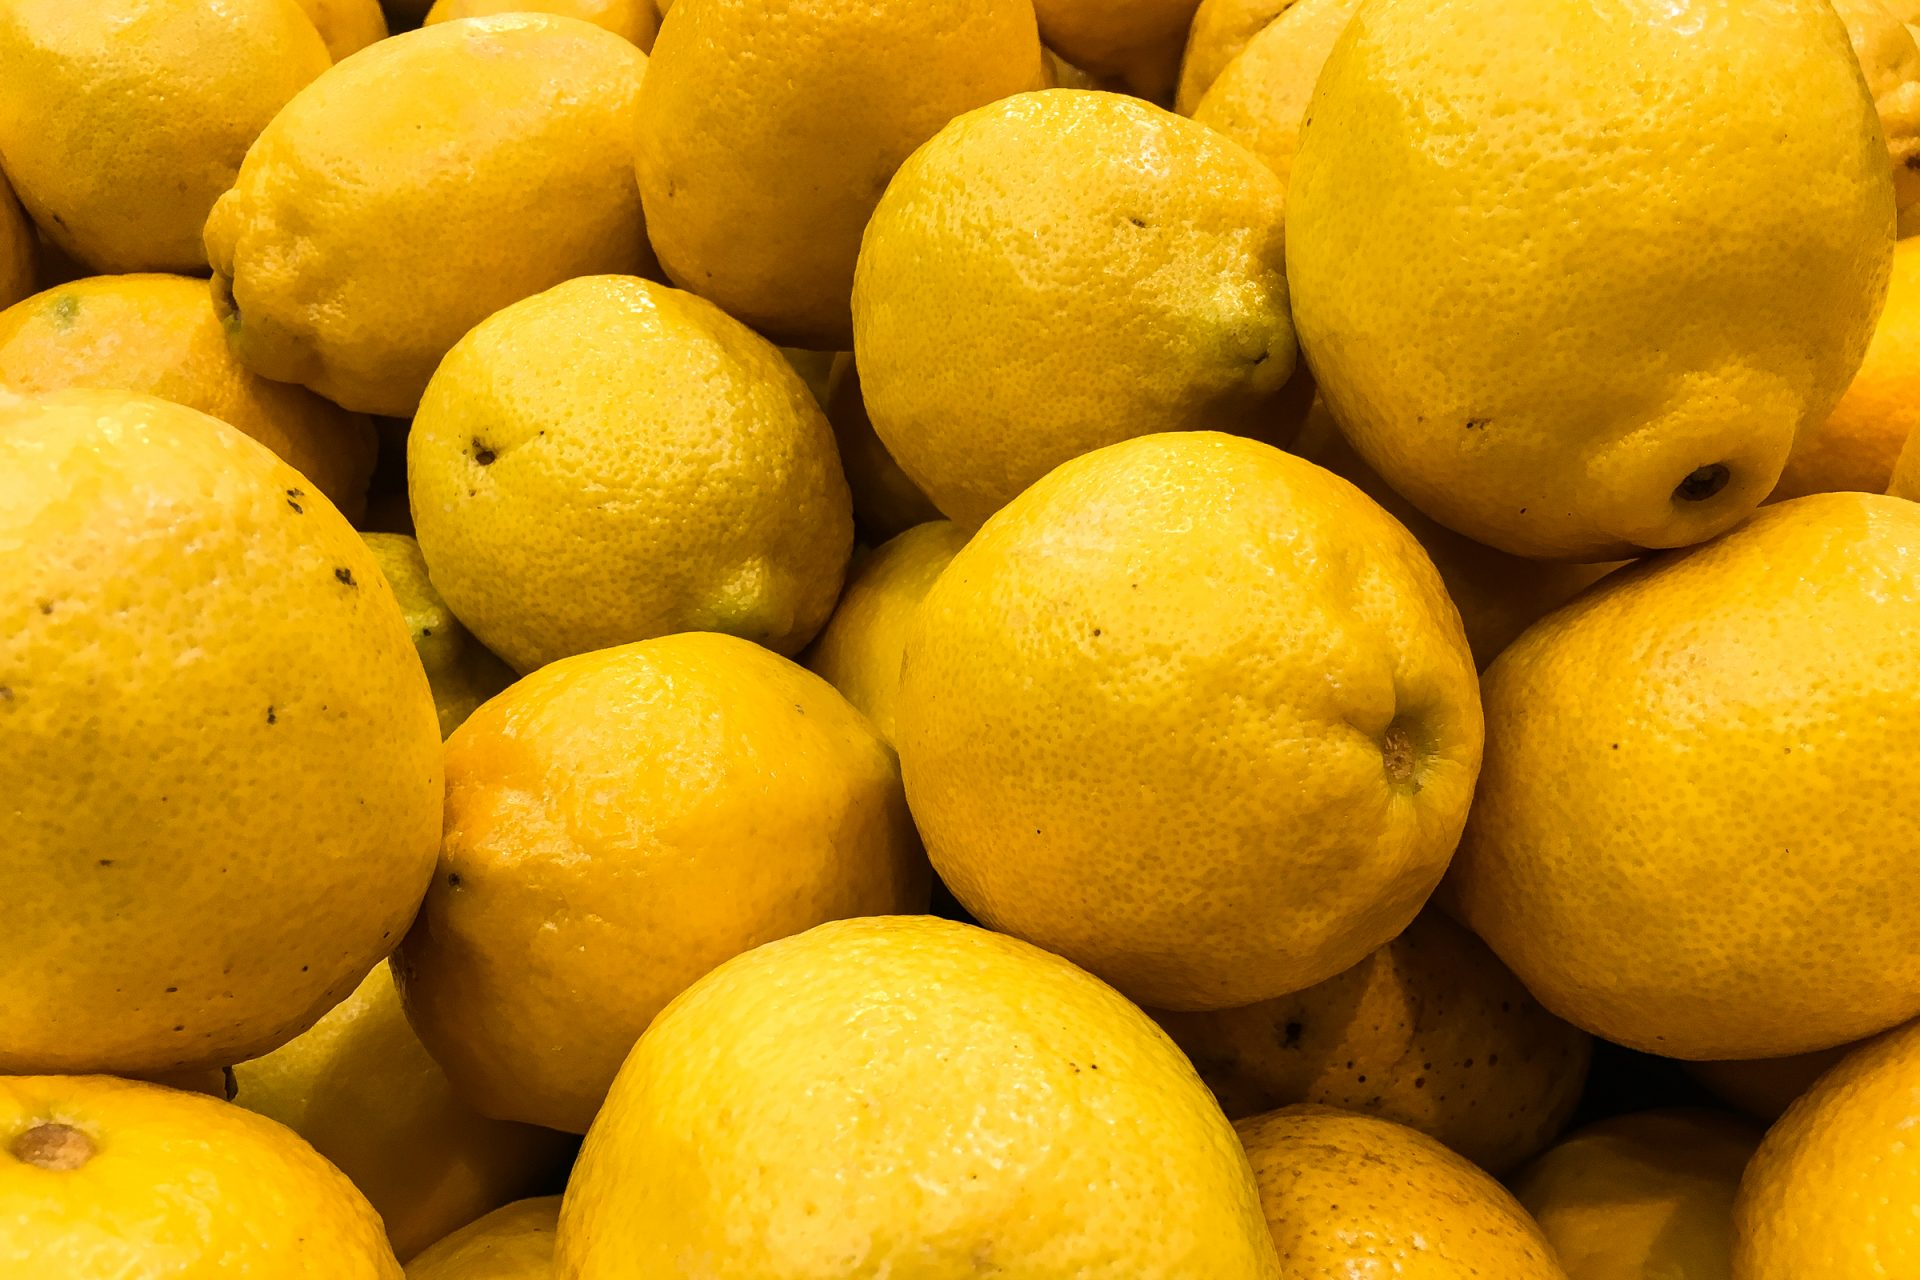 Group of Yellow Lemons